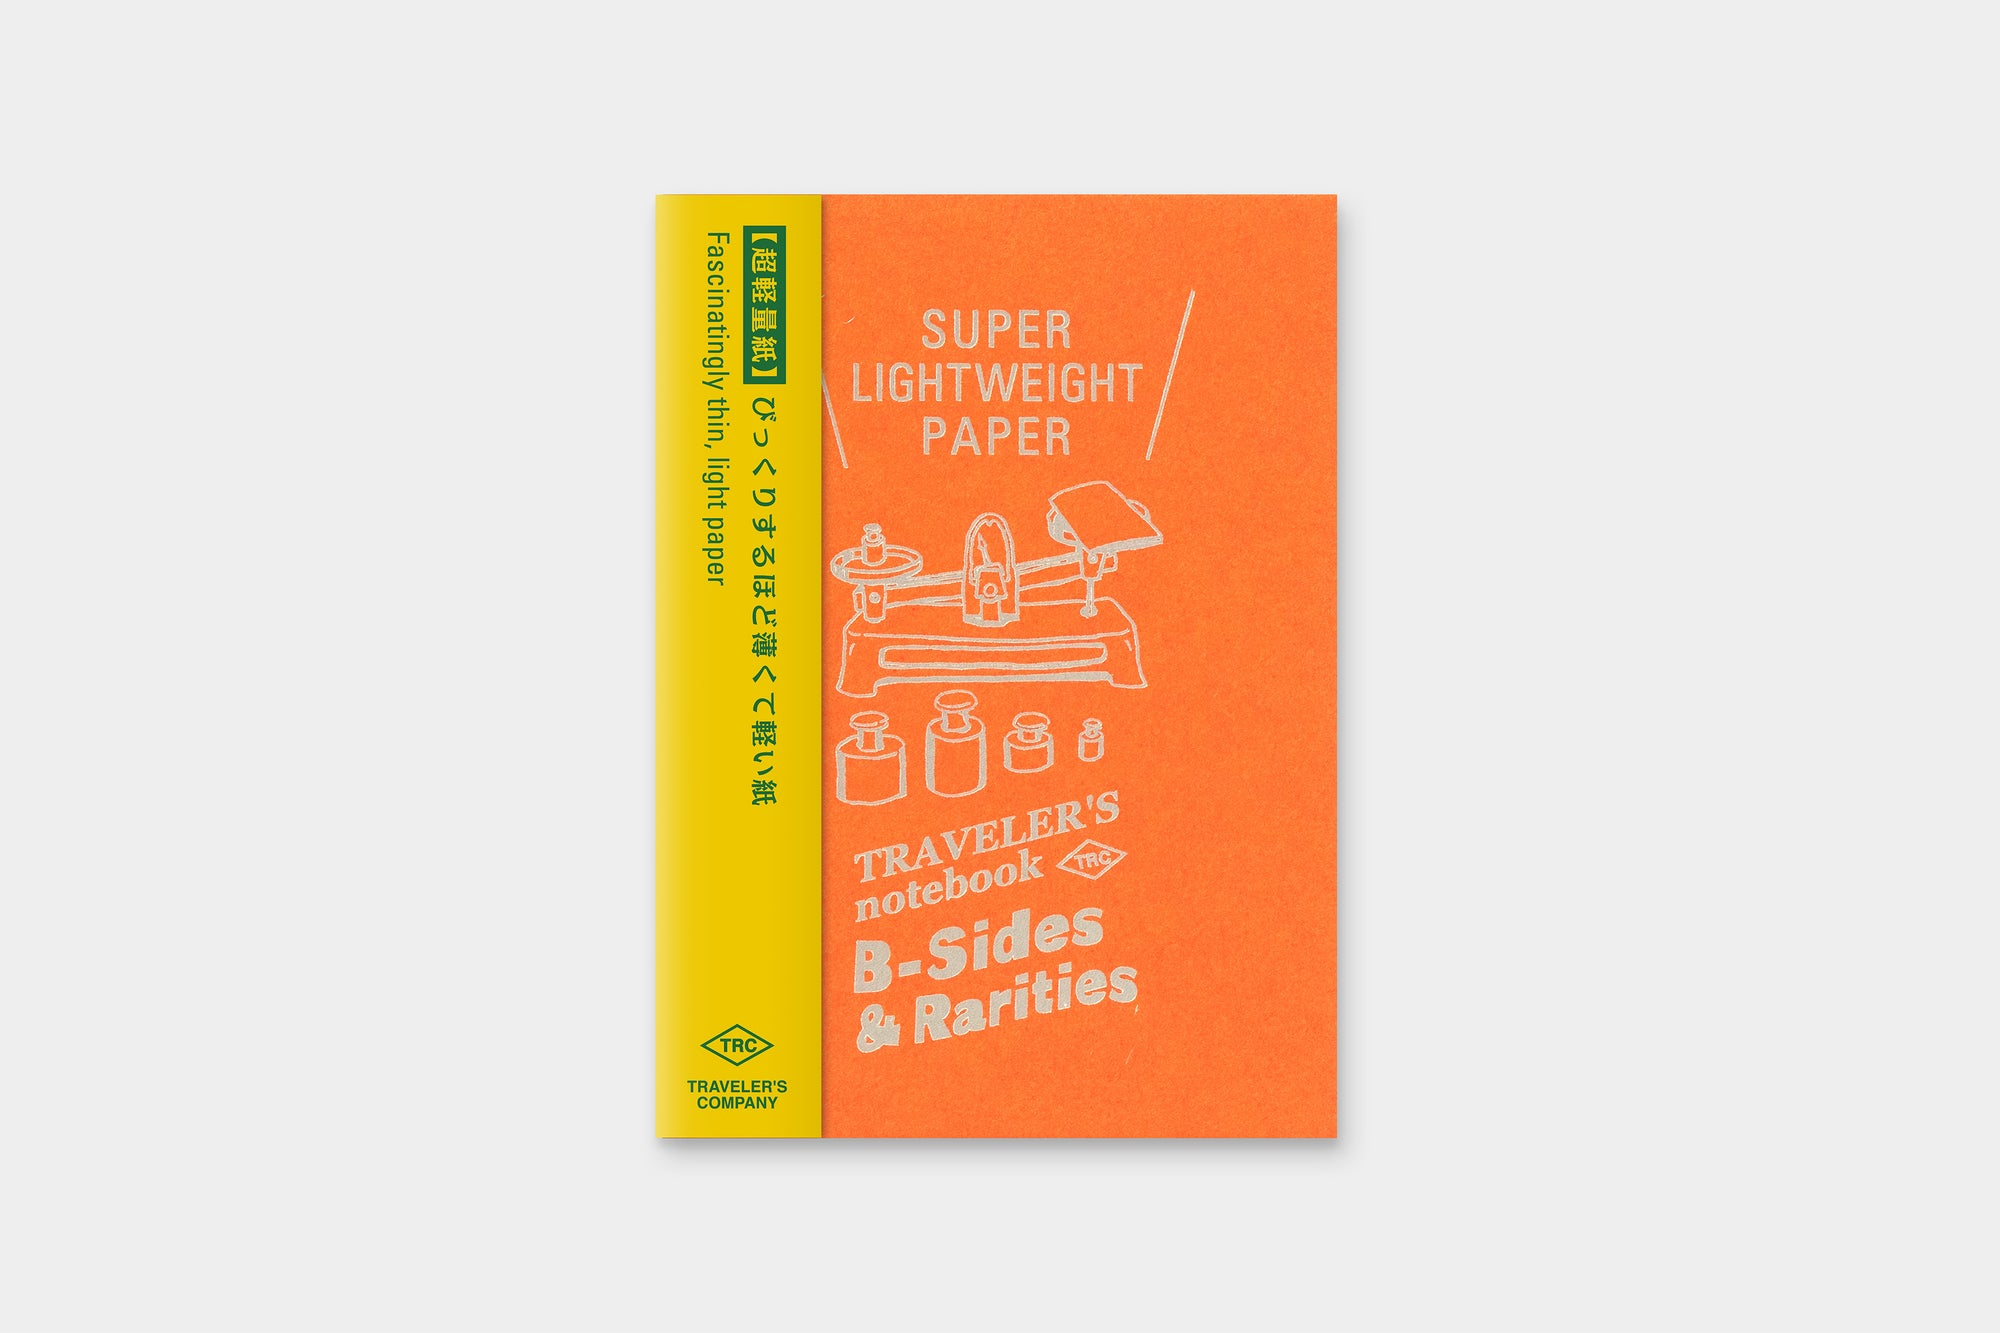 TRAVELER'S LTD Edition - TRAVELER'S notebook Passport Size Refill Super Lightweight Paper